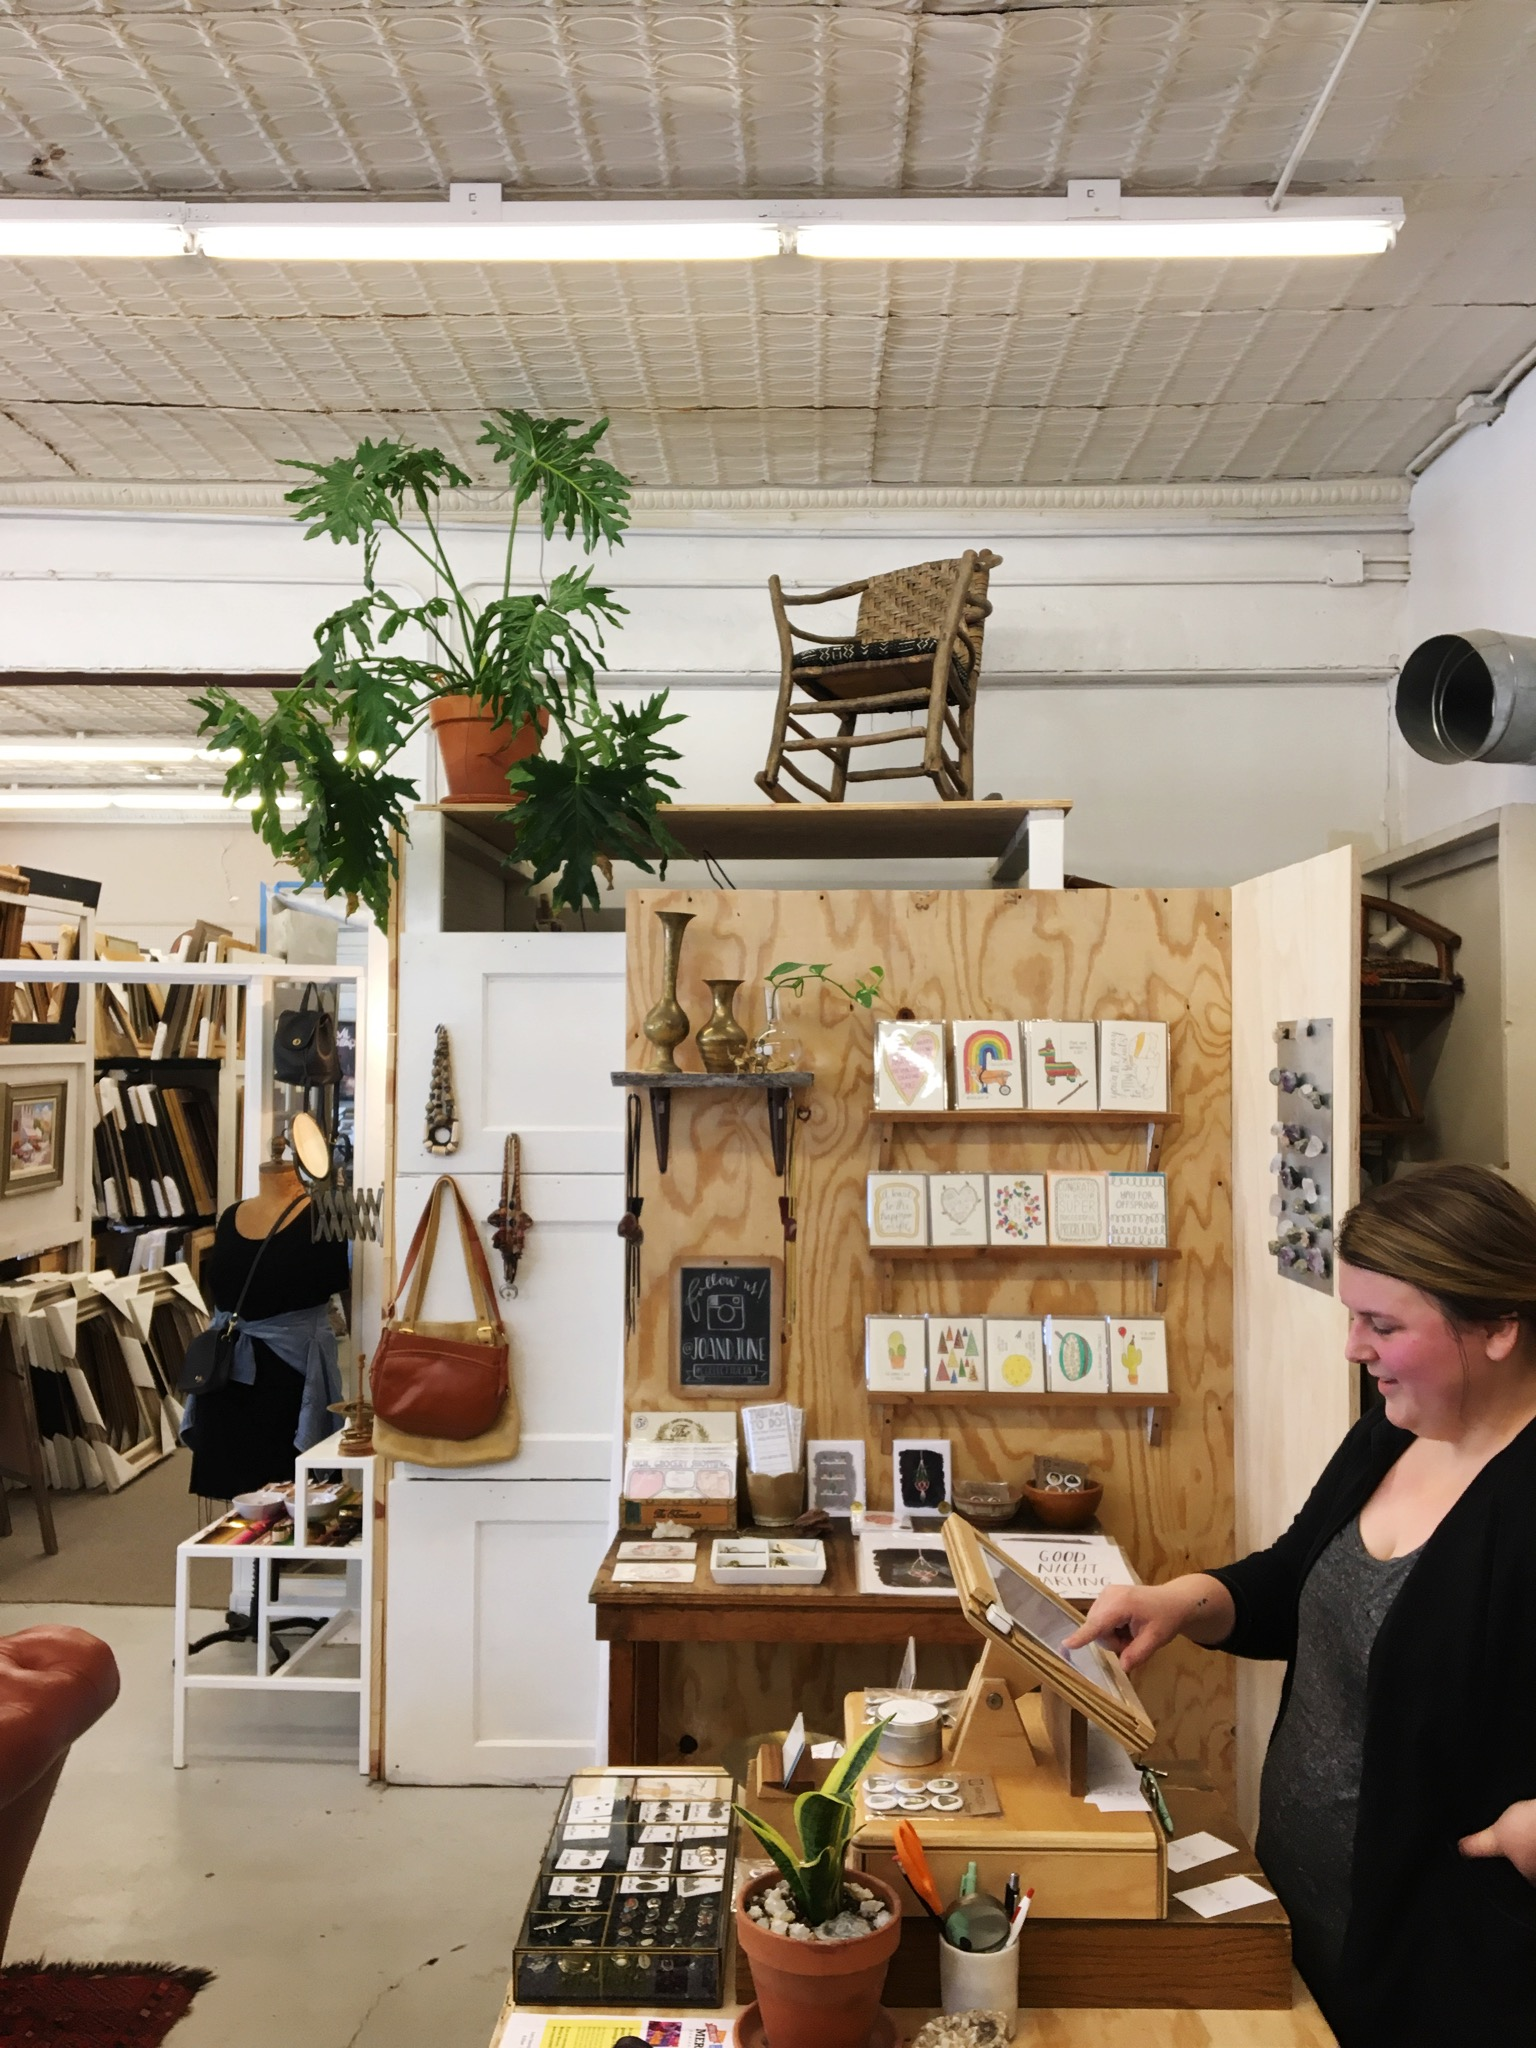 One of the owners, Danielle, adding up my tab. I got some vintage clothes that make me feel like I may run a floral booth at the farmer's market–exactly how I want to feel about myself. -Daly